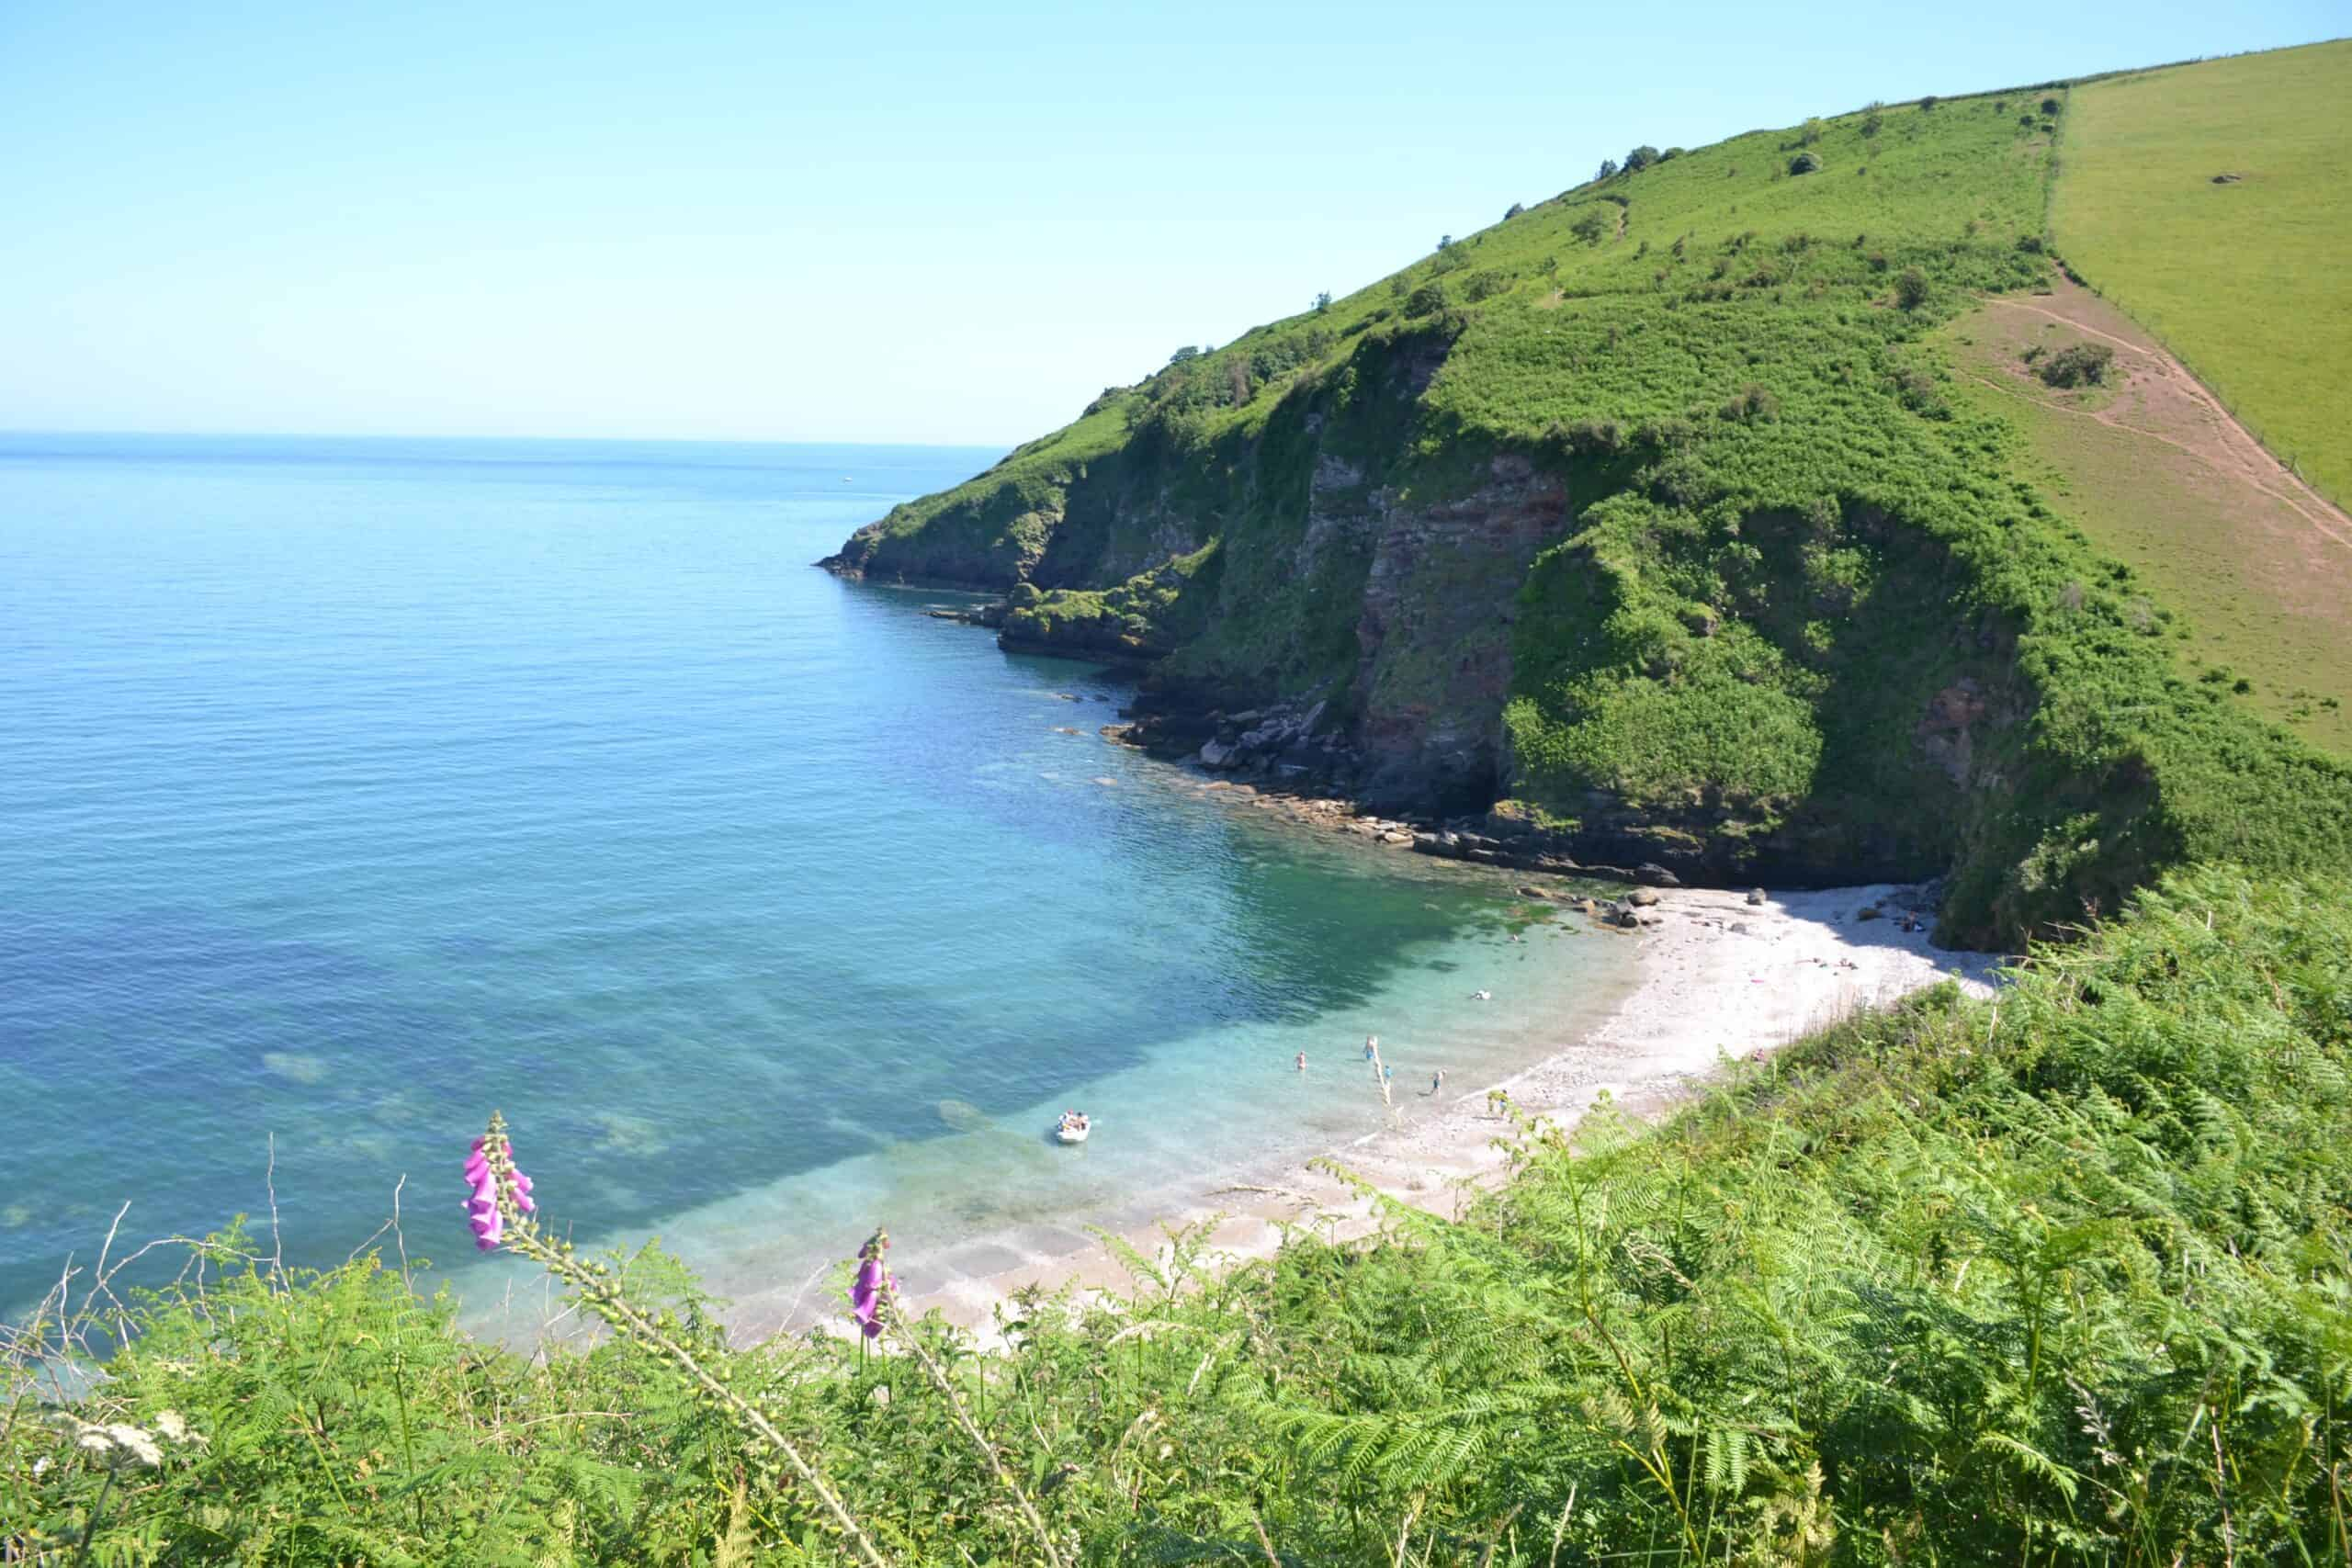 View of Scabbacombe Sands beach in Devon - a secluded bay